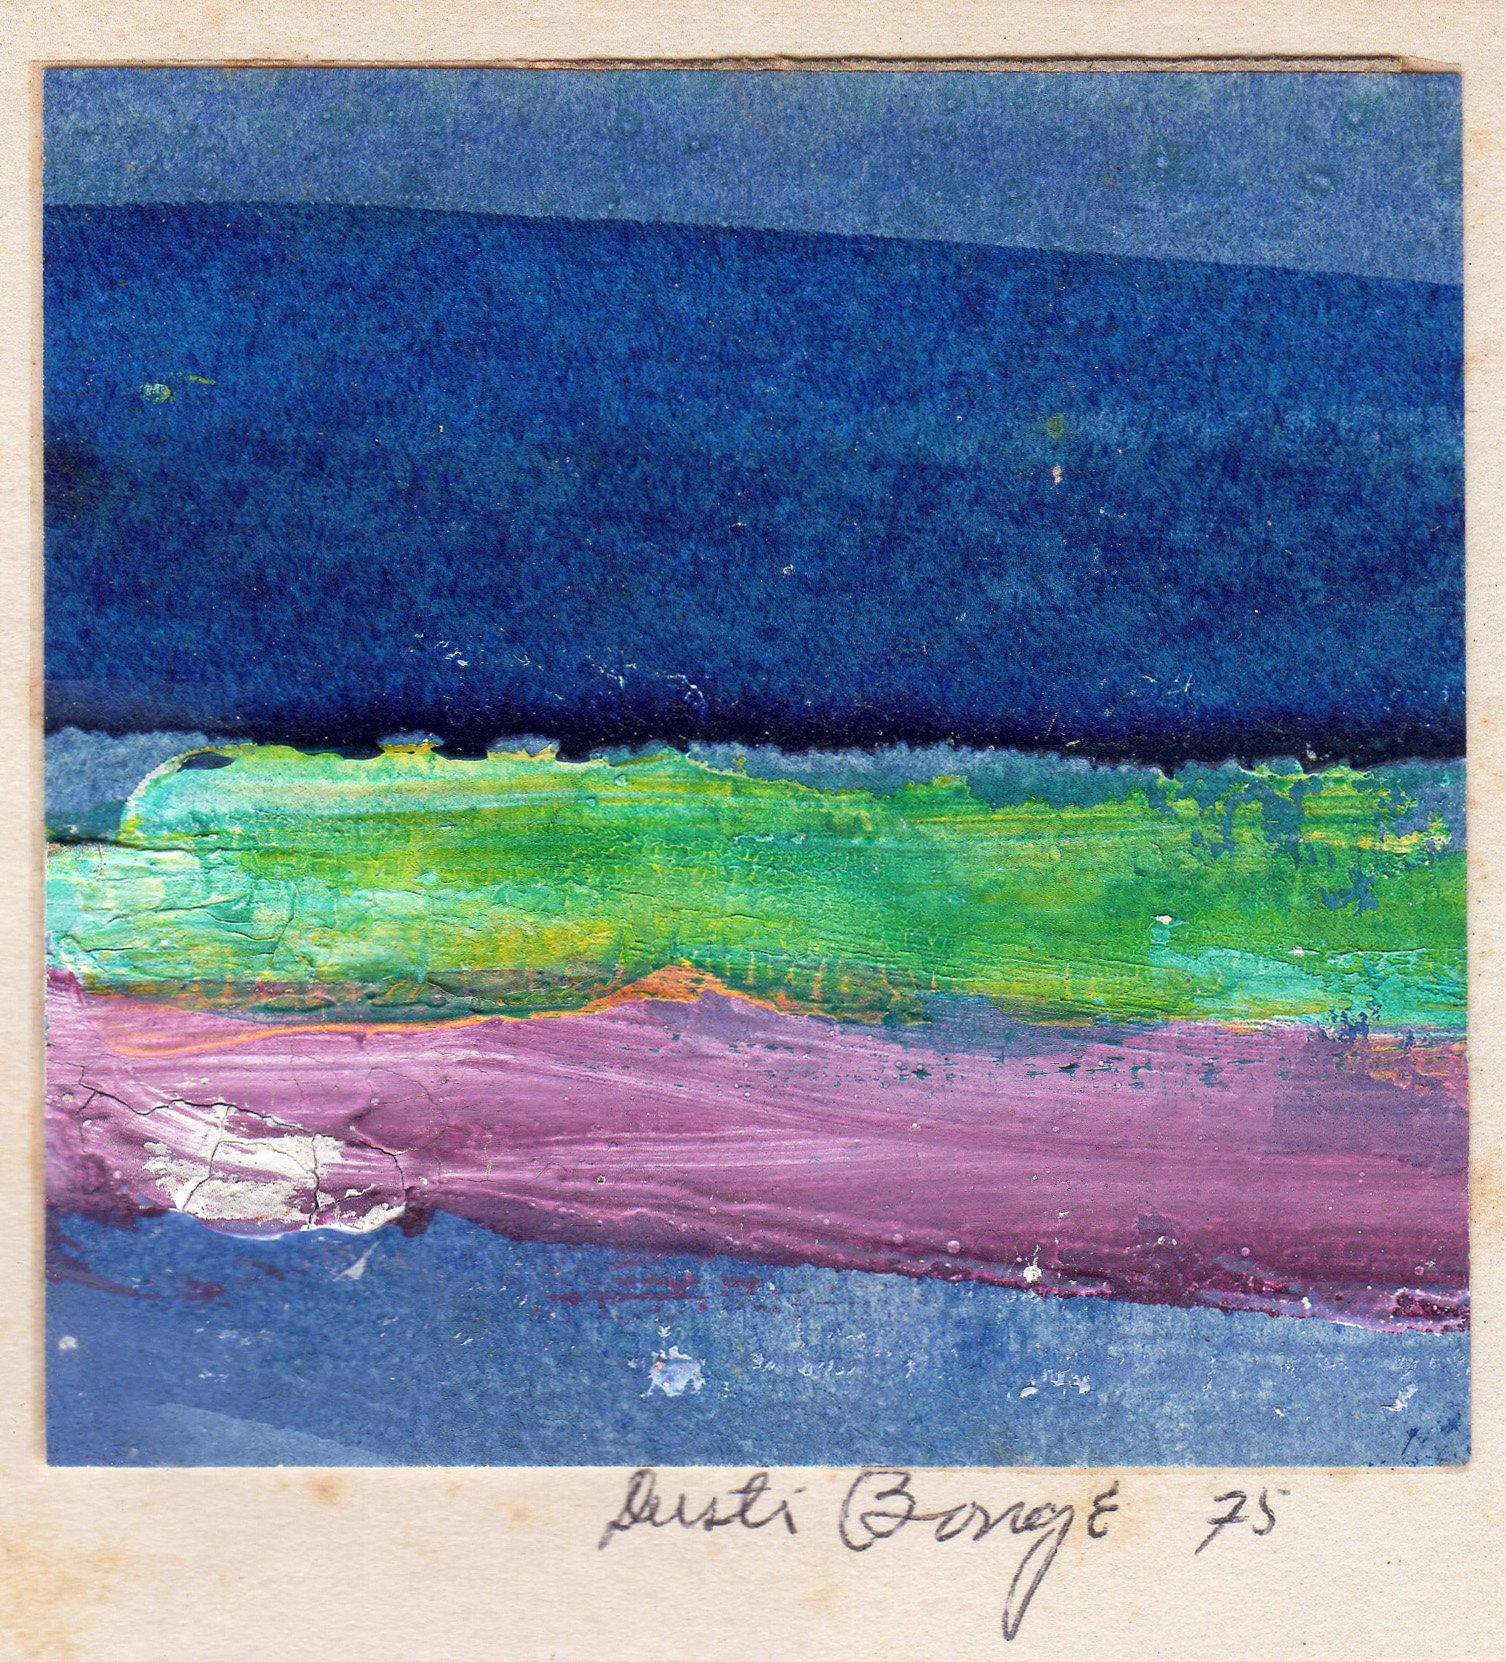 """Untitled (Blue, Green and Purple Abstract), 1975, acrylic on paper, 2 3/8"""" x 2 3/8"""""""